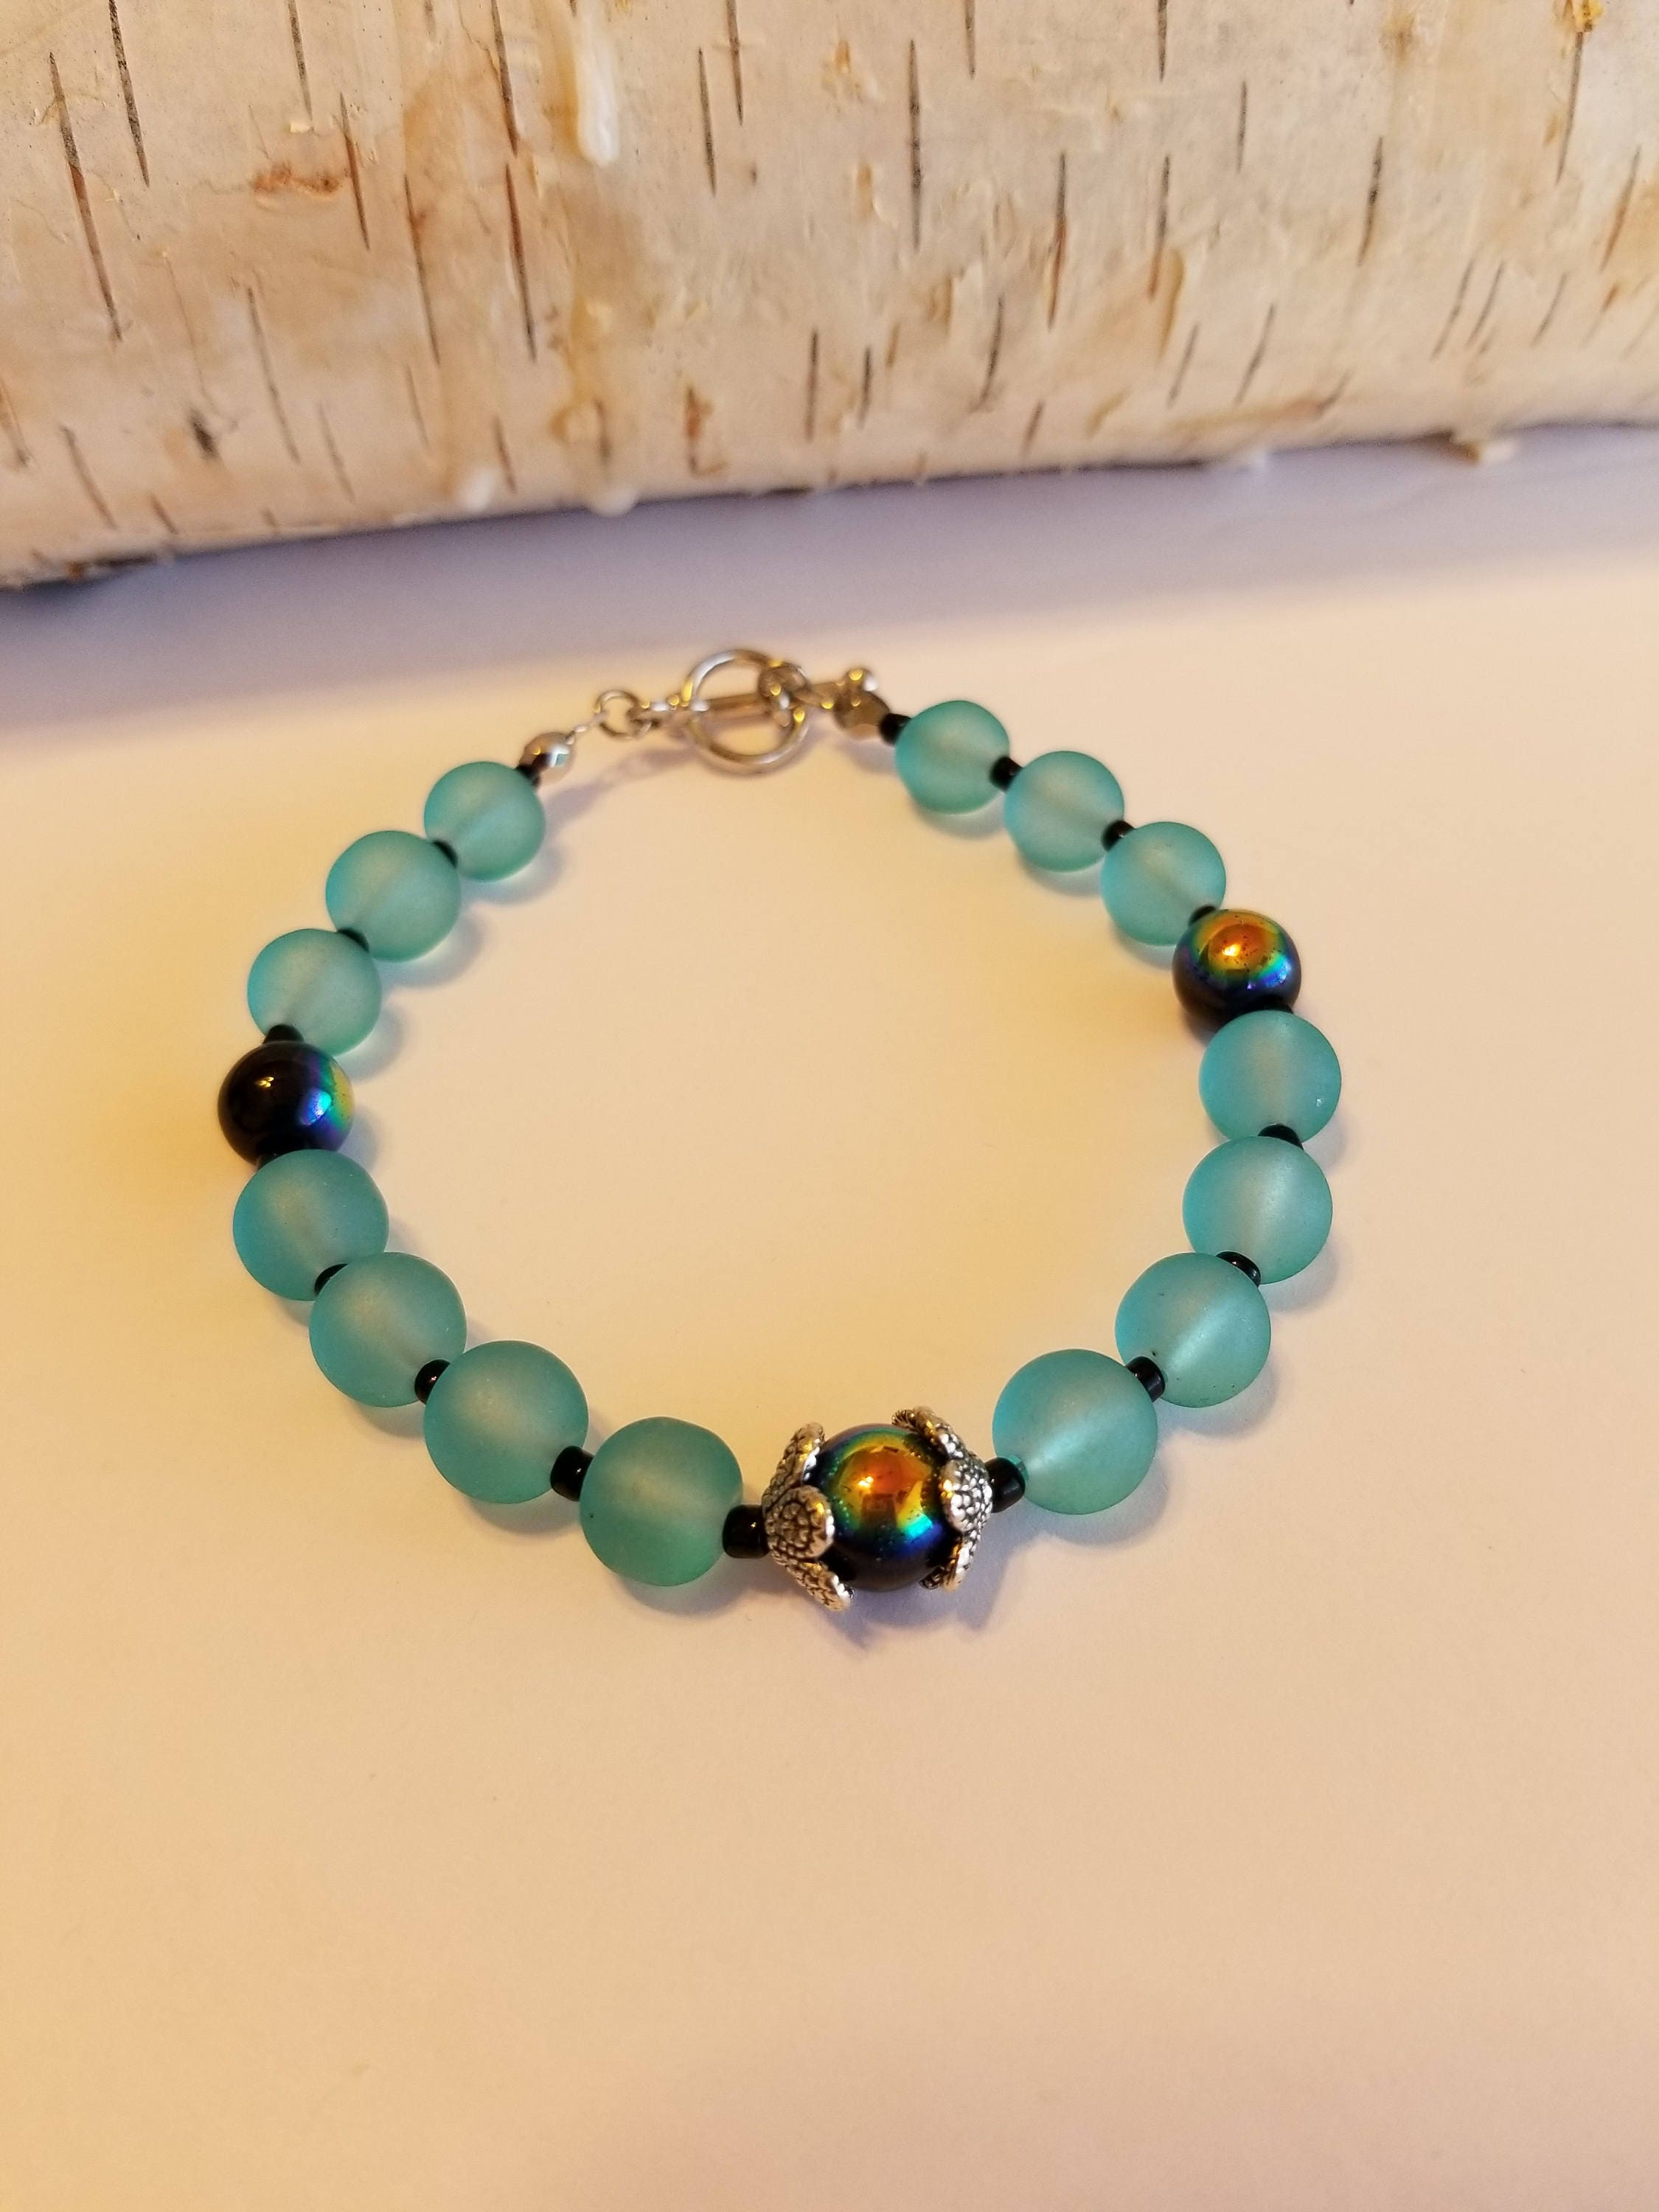 gem healing aquamarine products orelia bracelet london aqua